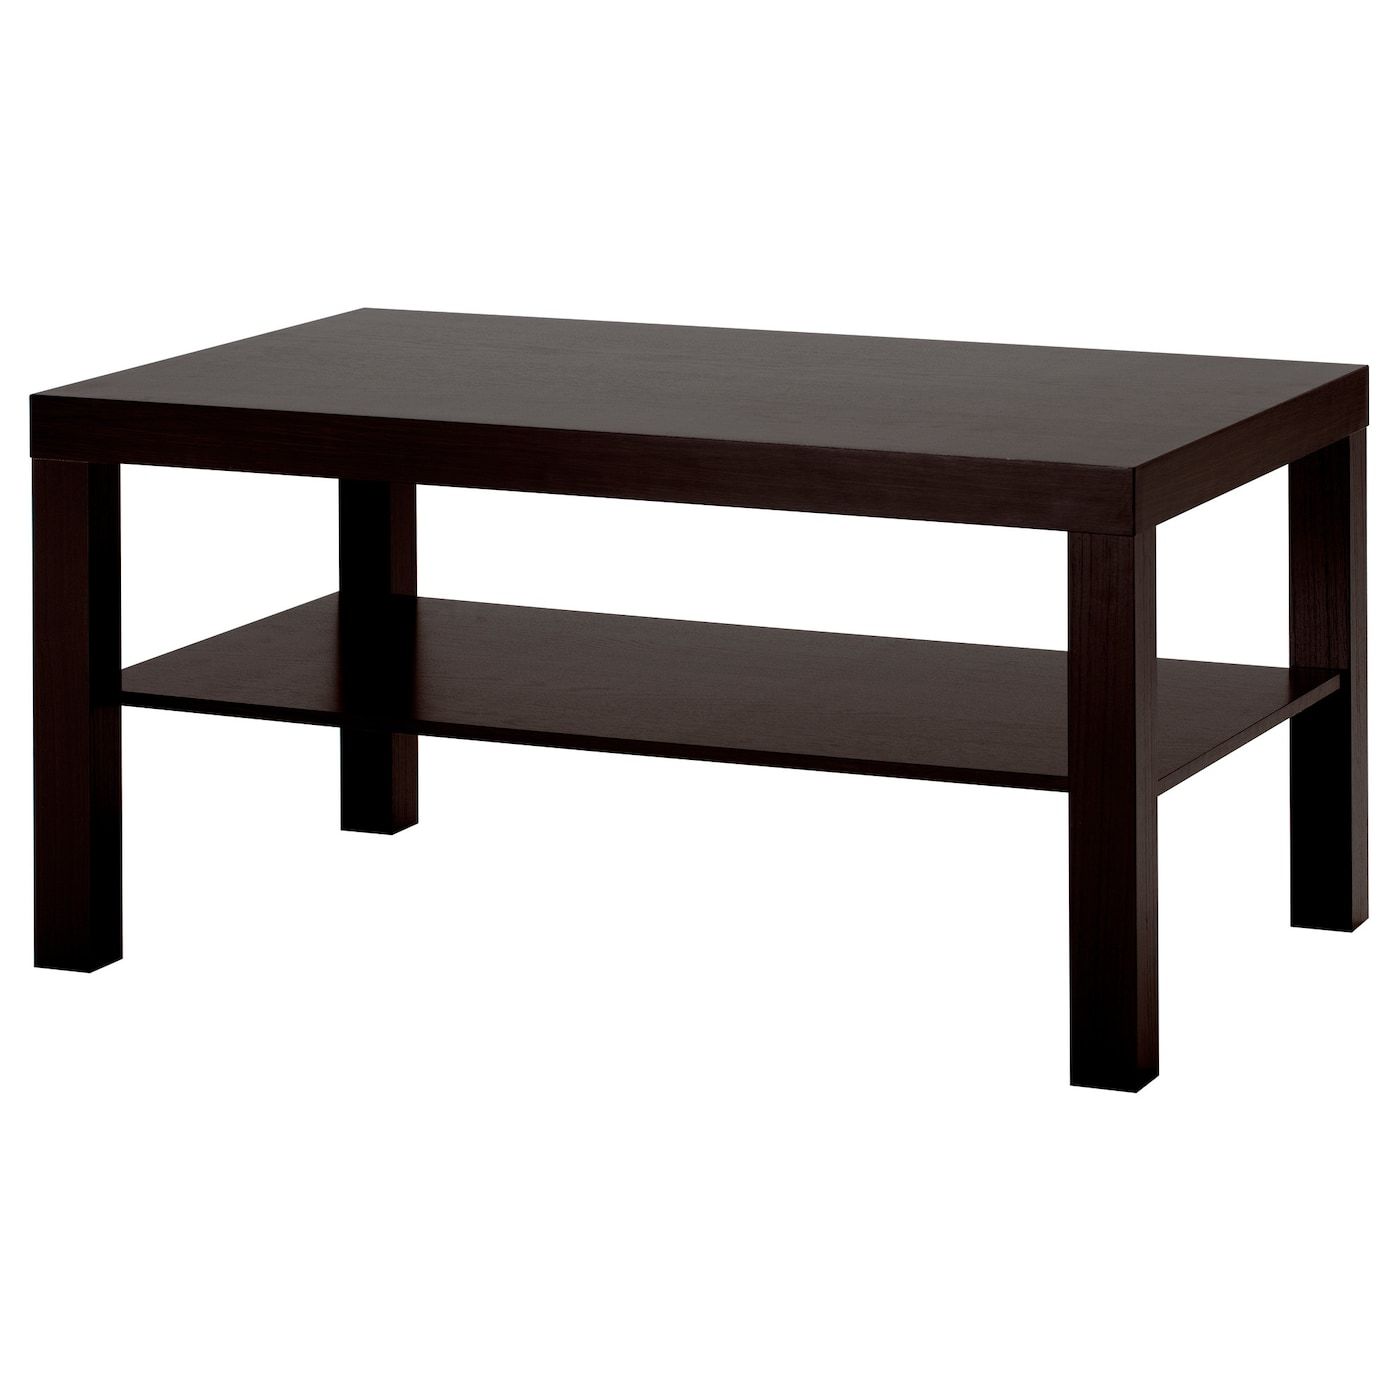 Lack coffee table black brown 90x55 cm ikea Black coffee table